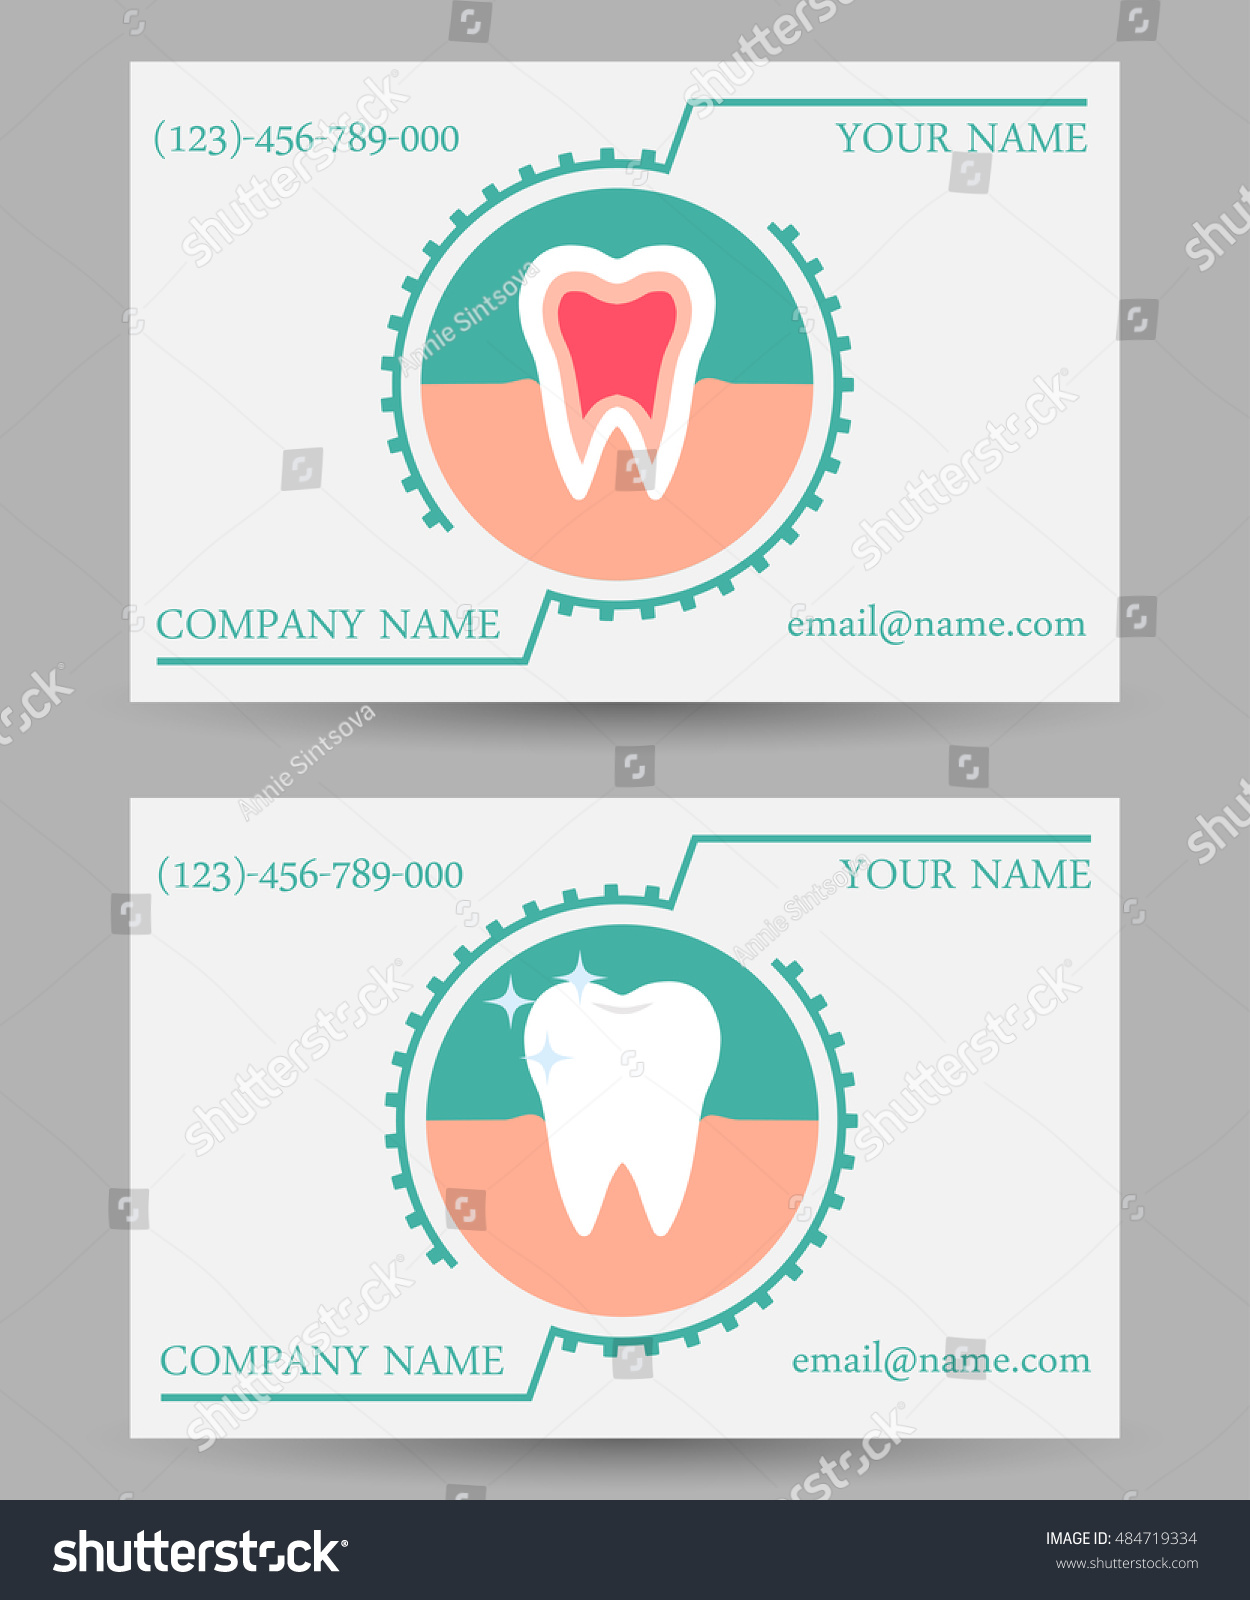 luxury gallery of dental hygienist business cards business cards and resume. Black Bedroom Furniture Sets. Home Design Ideas